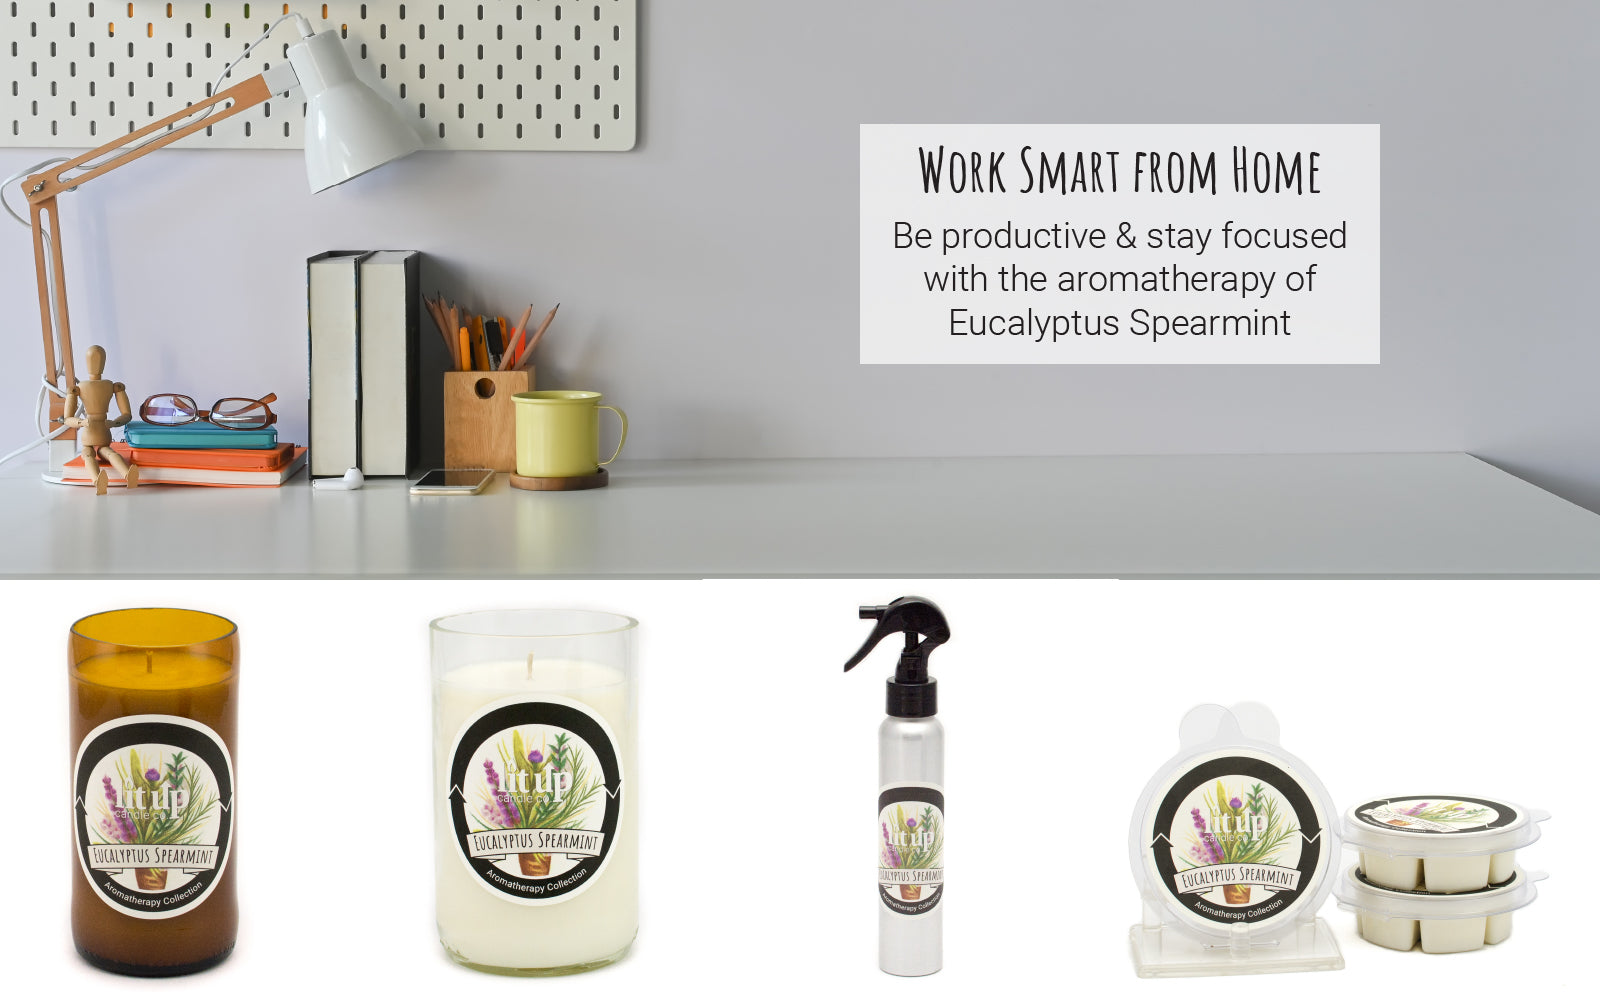 Work Smart from Home | Be productive & stay focused with the aromatherapy of Eucalyptus Spearmint